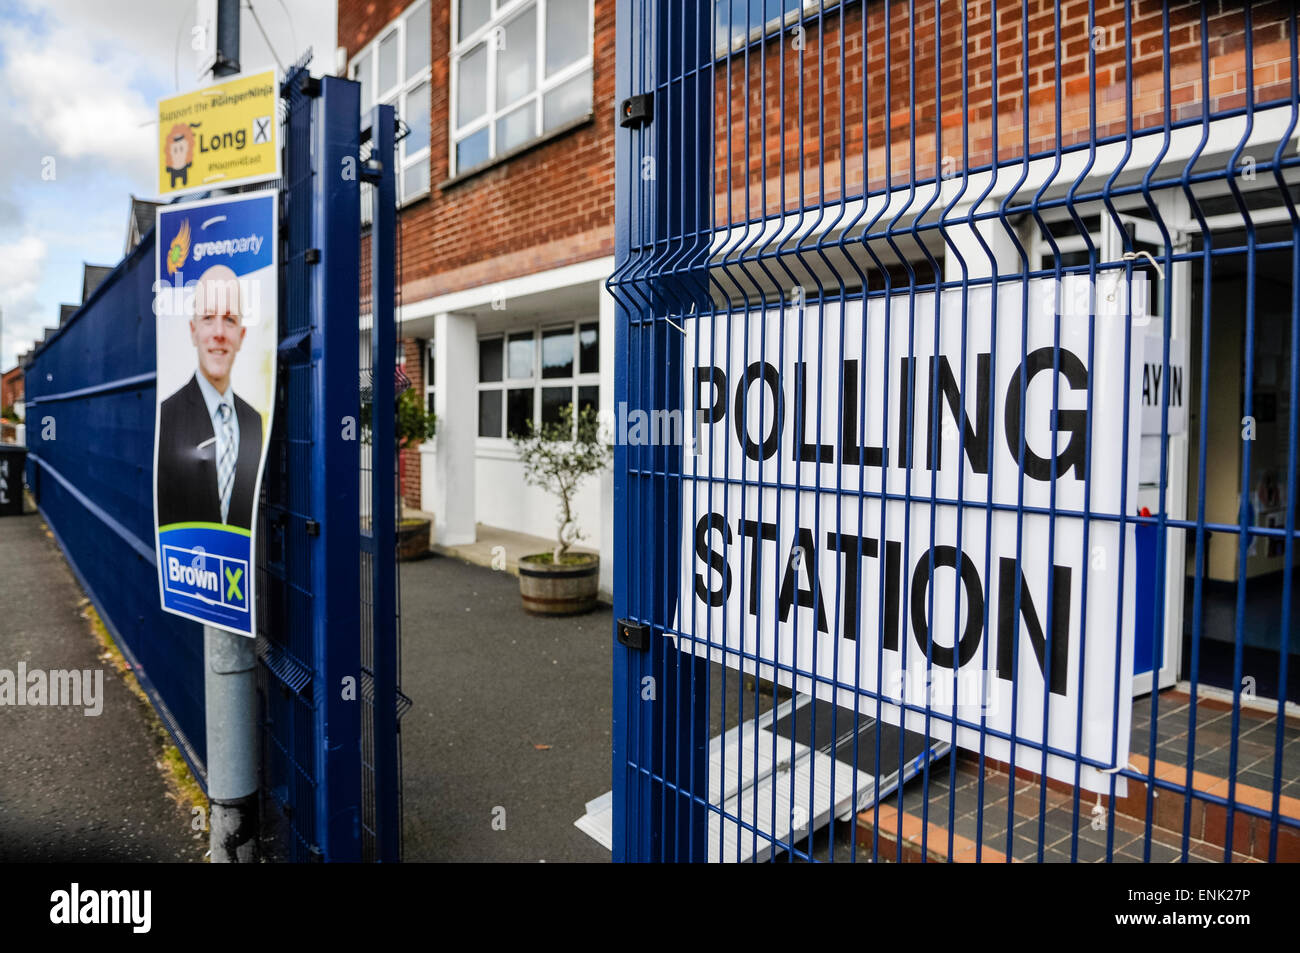 UK Polling Station during a general election - Stock Image